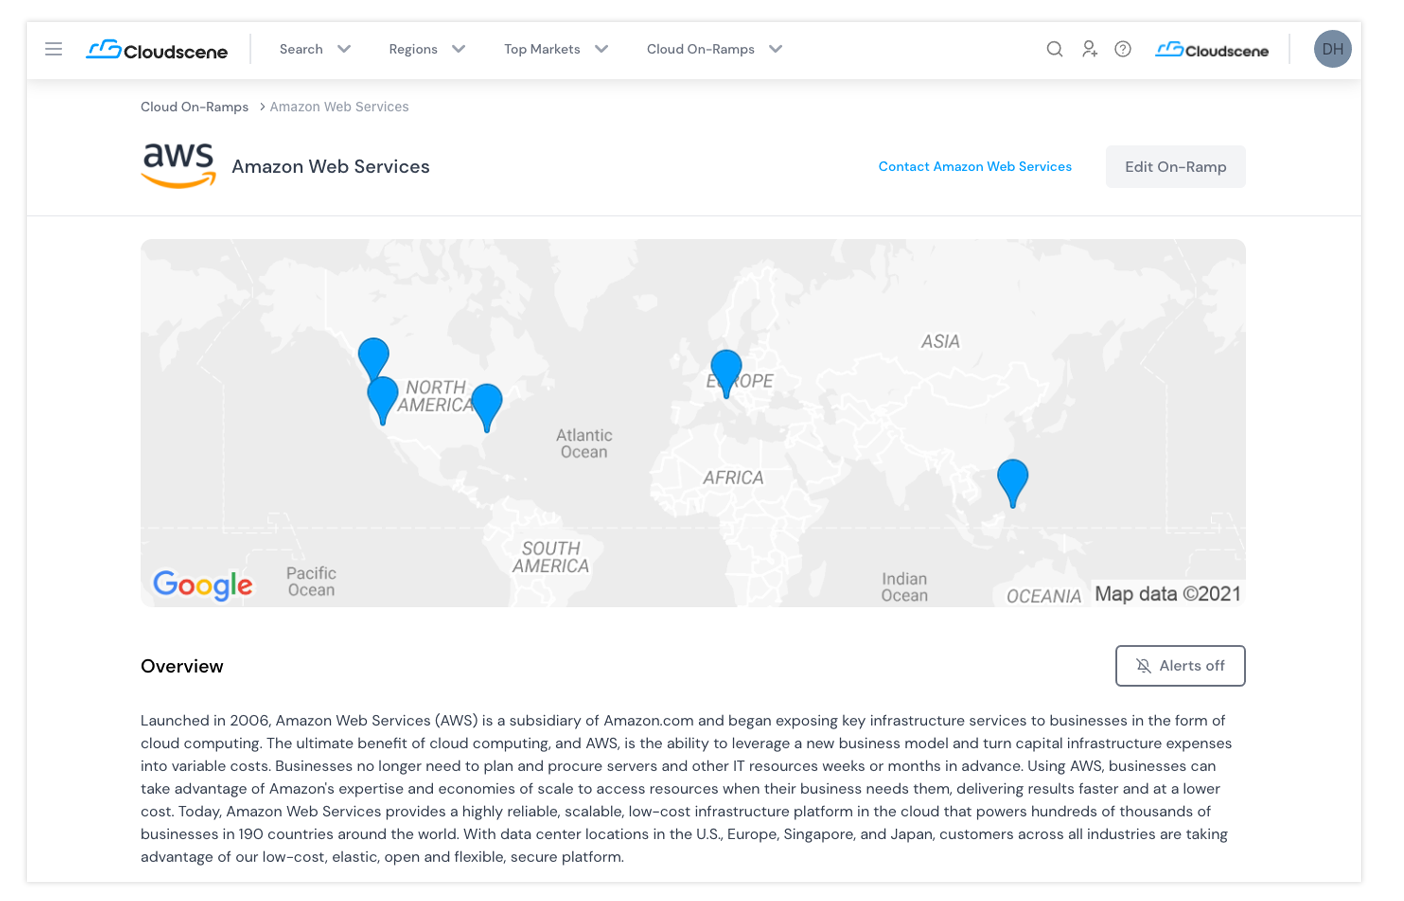 Screenshot of Amazon Web Services (AWS) company profile located within Cloudscene Cloud on-ramp section